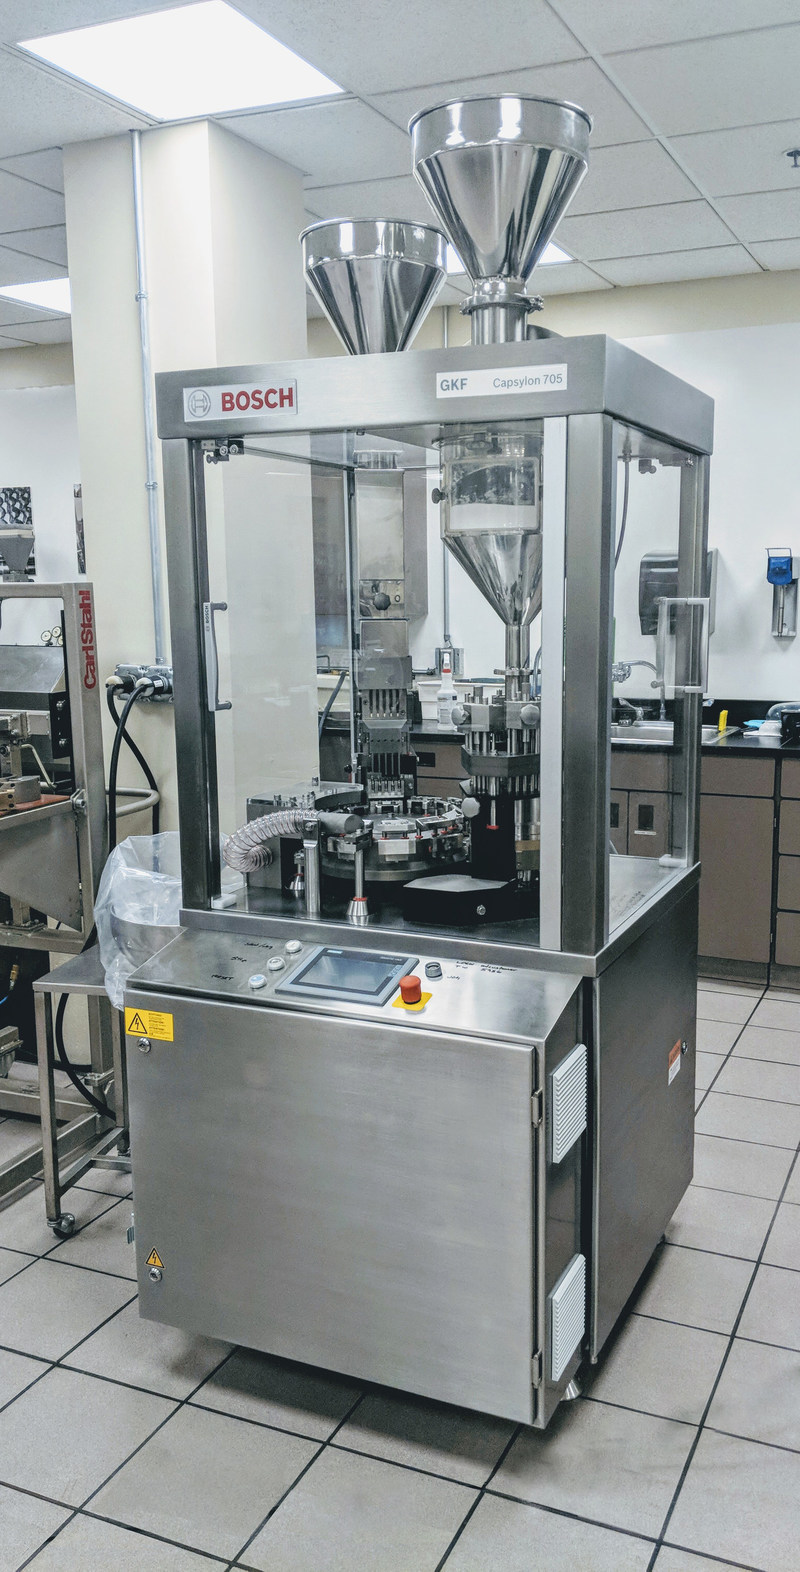 Bosch Packaging Technology: GKF Capsylon 705 Capsule Filler